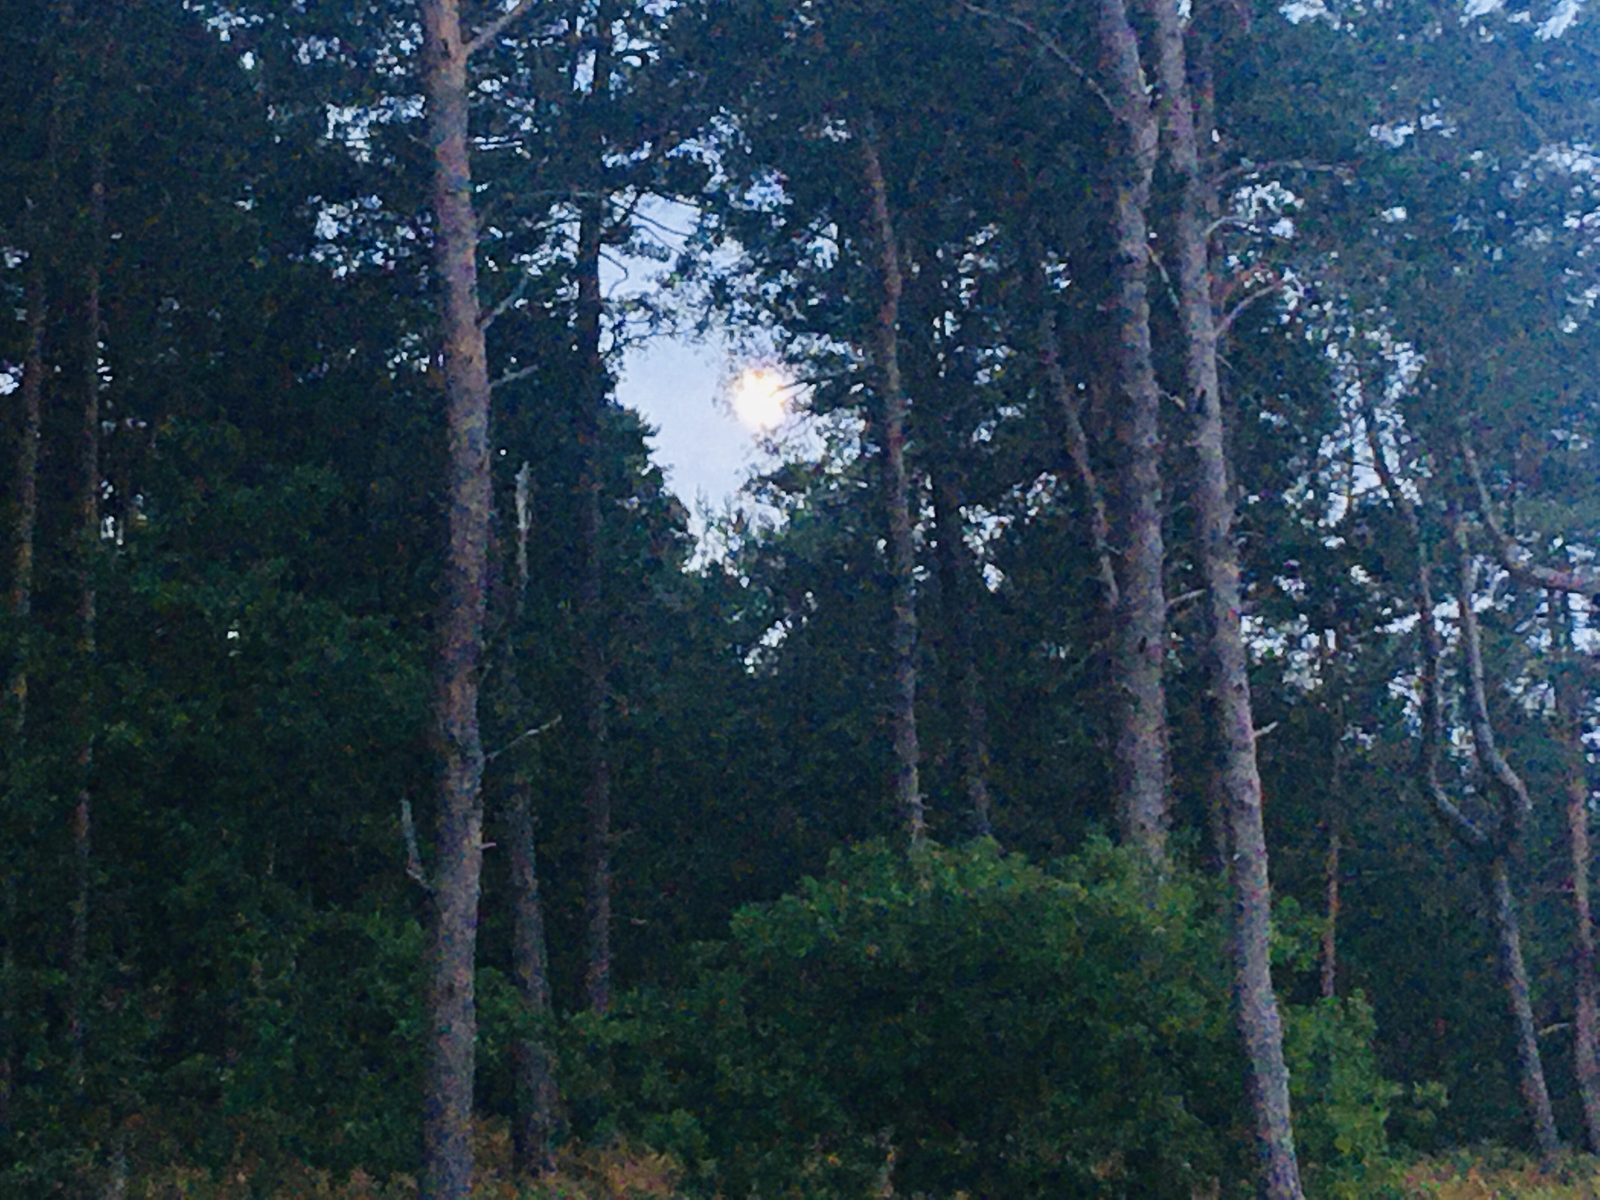 The Moon framed through the trees.